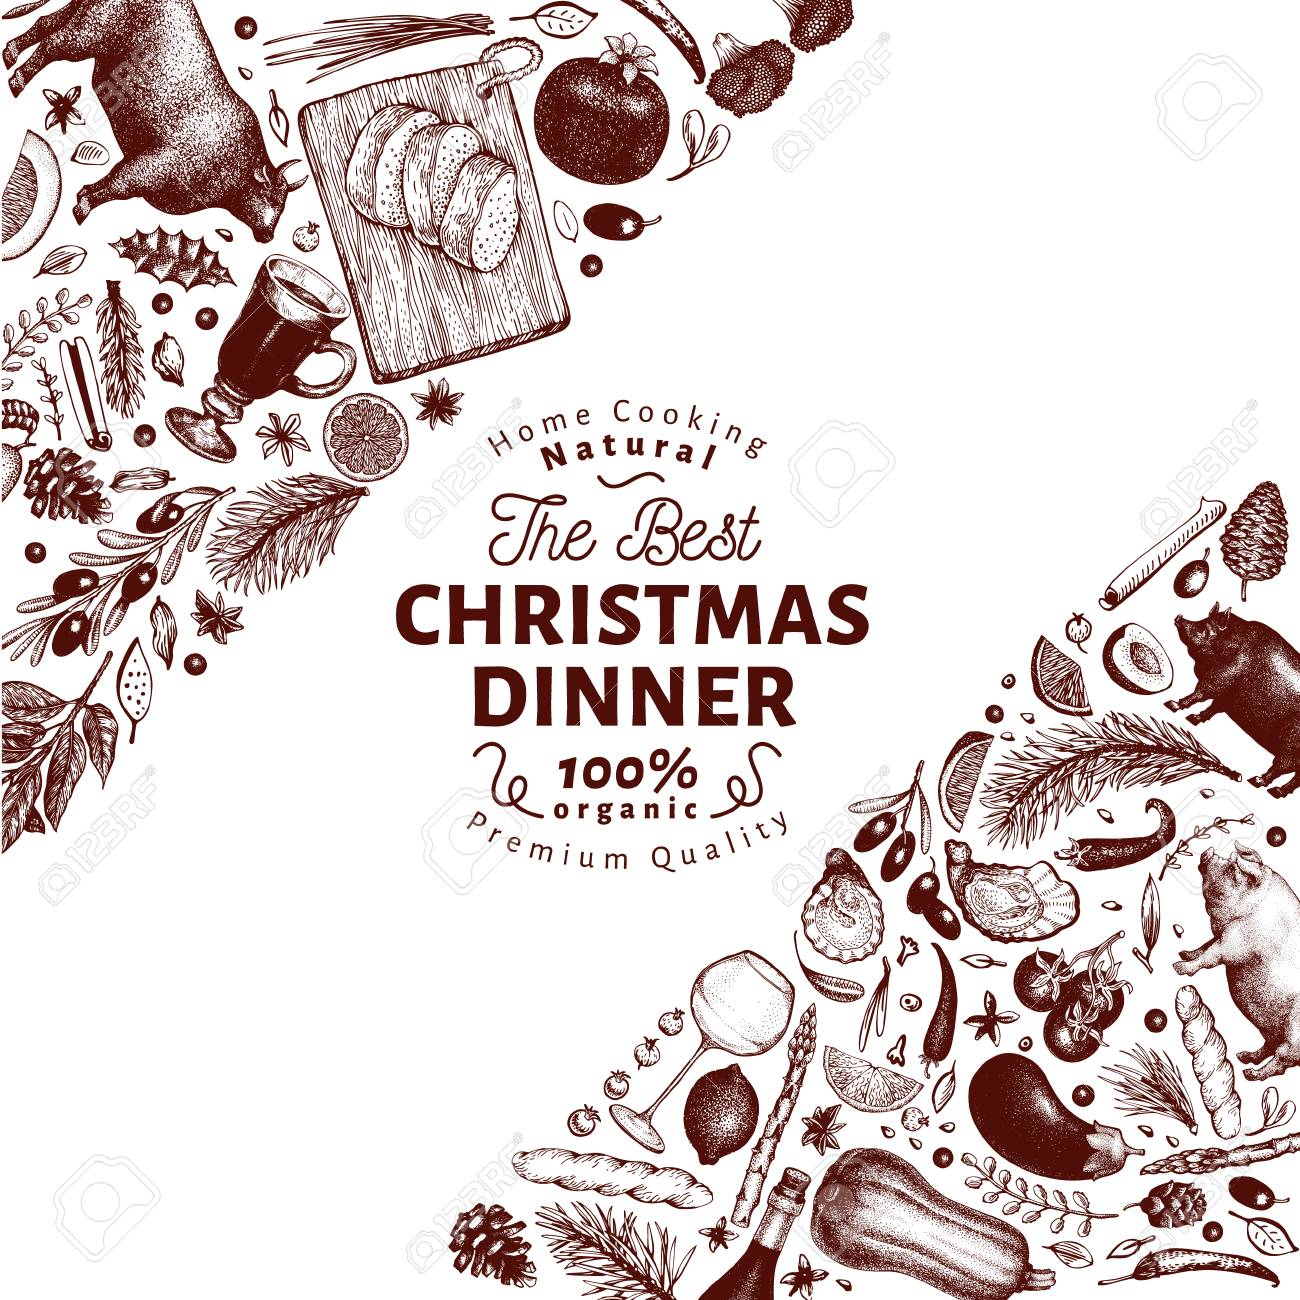 Happy Christmas Dinner Design Template Vector Hand Drawn Illustrations